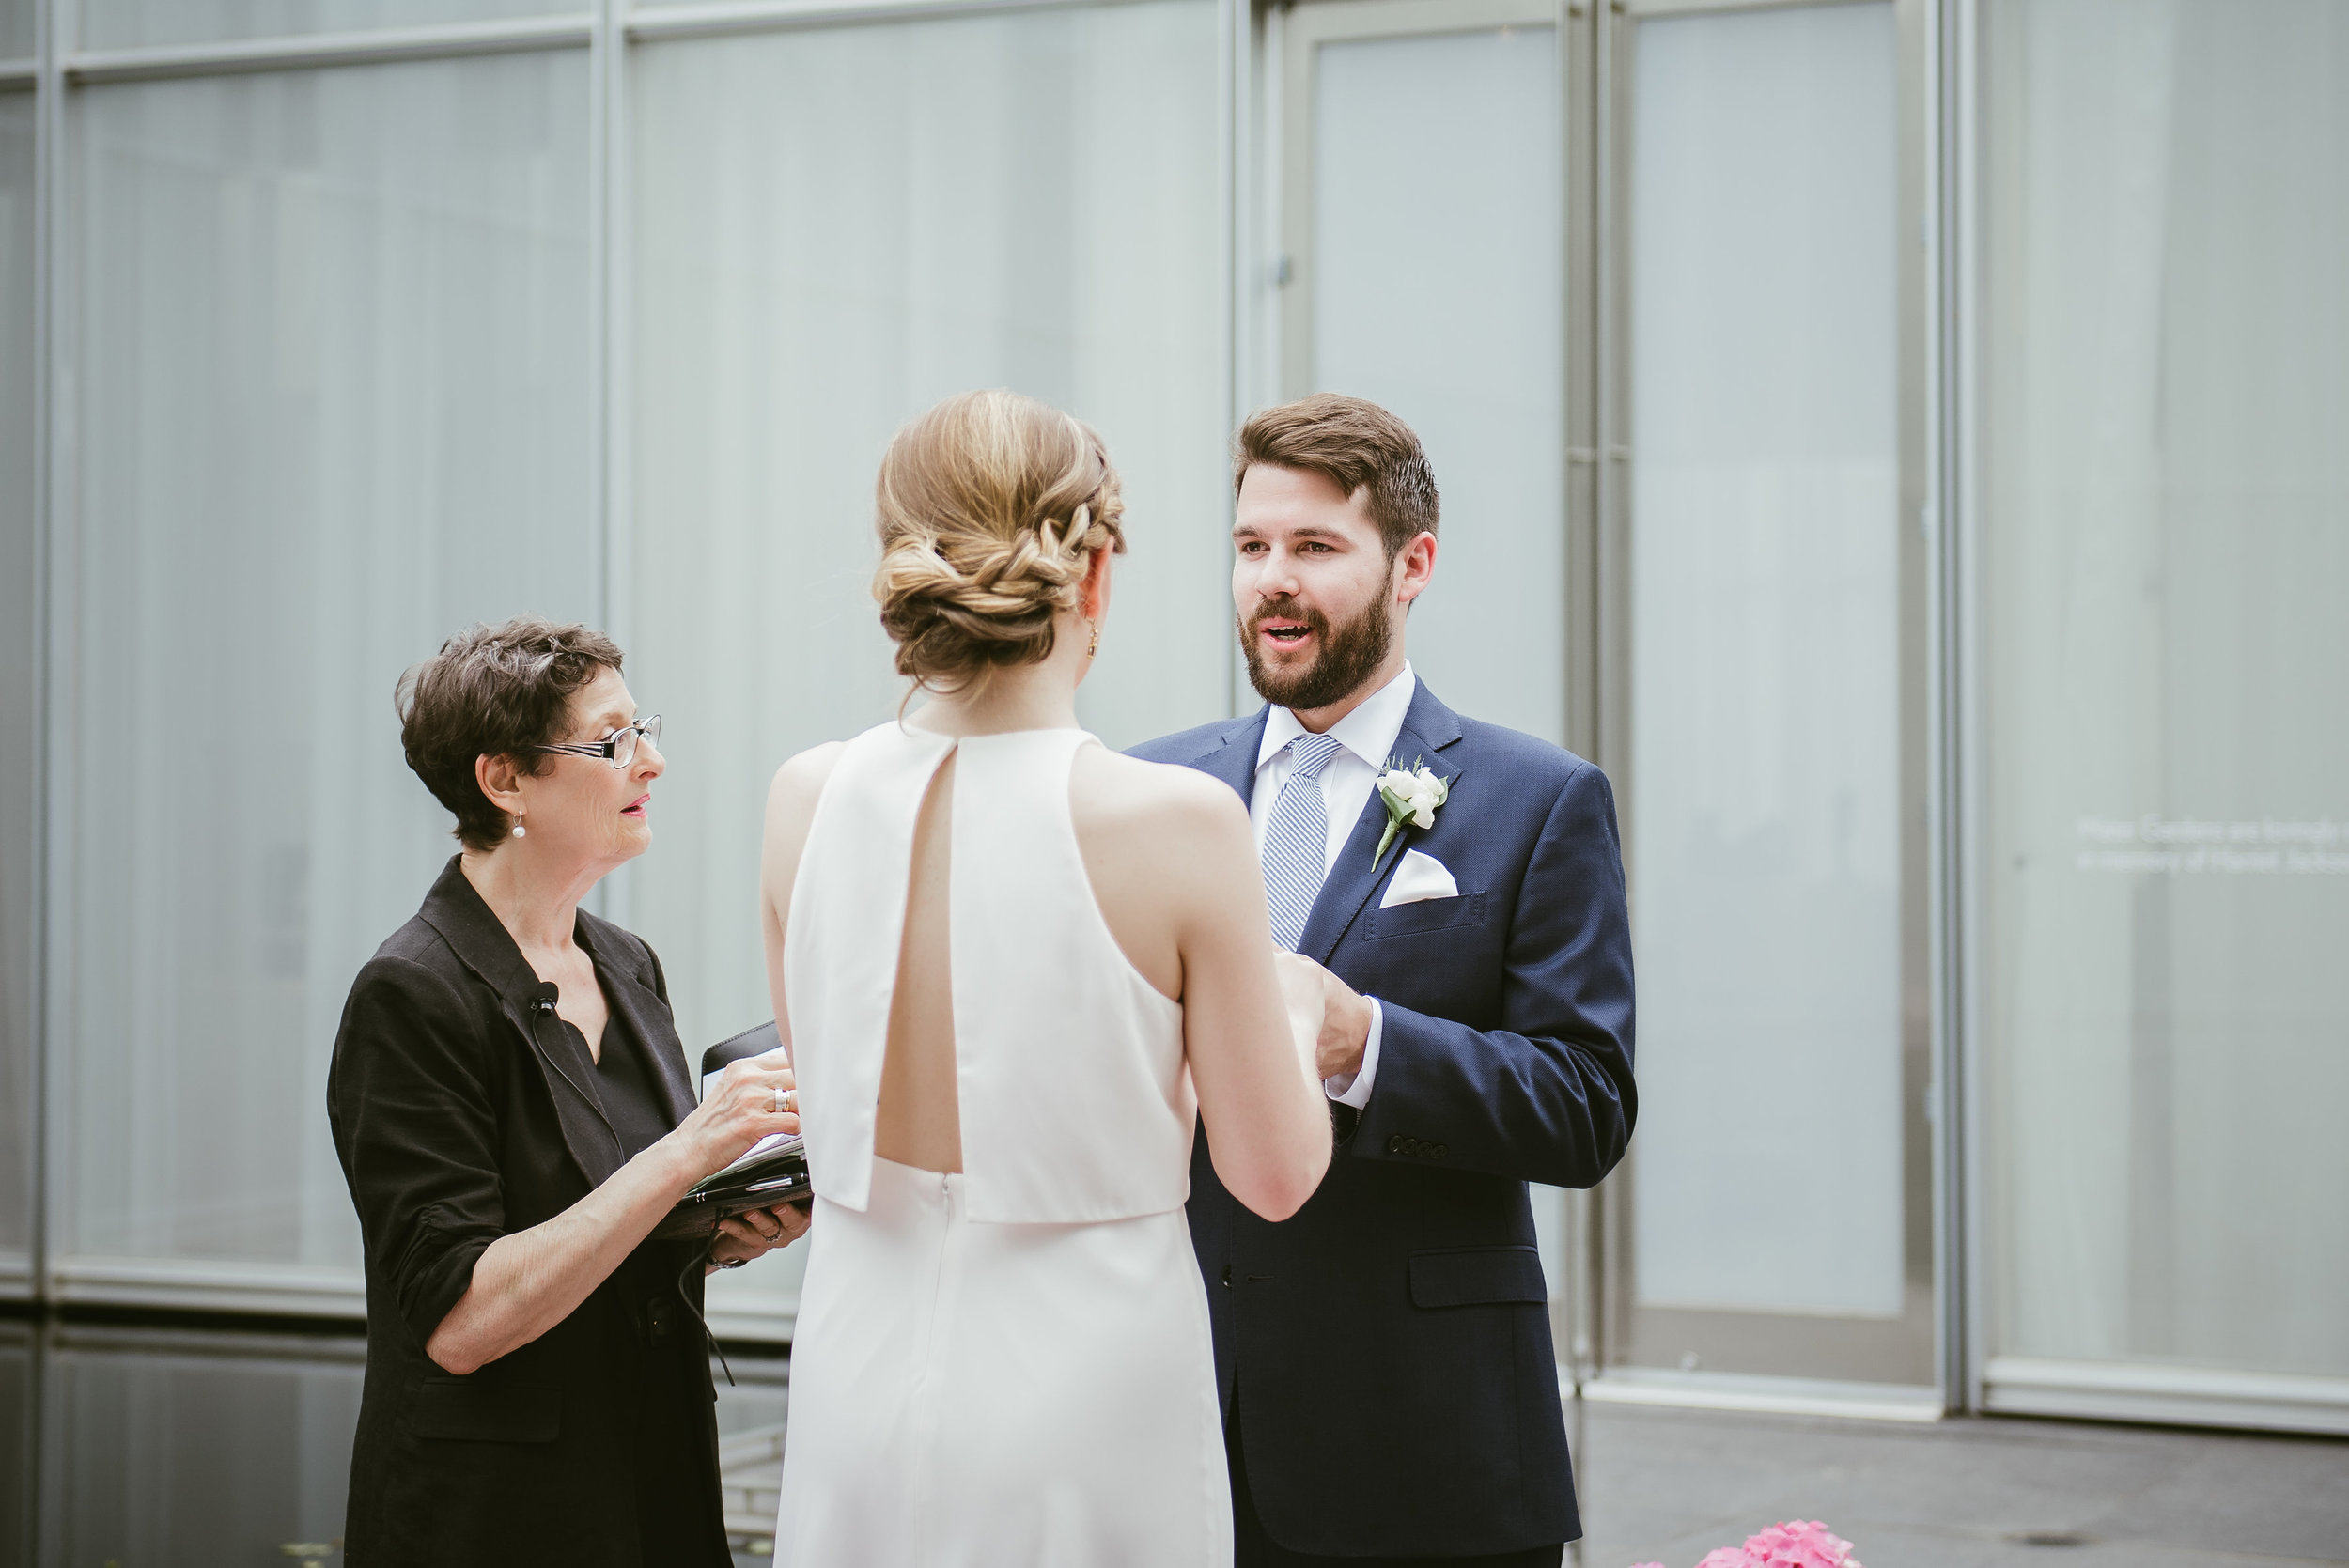 North Carolina Wedding Photographer - Raleigh Wedding Photographer - North Carolina Museum of Art Wedding - Downtown Raleigh Wedding